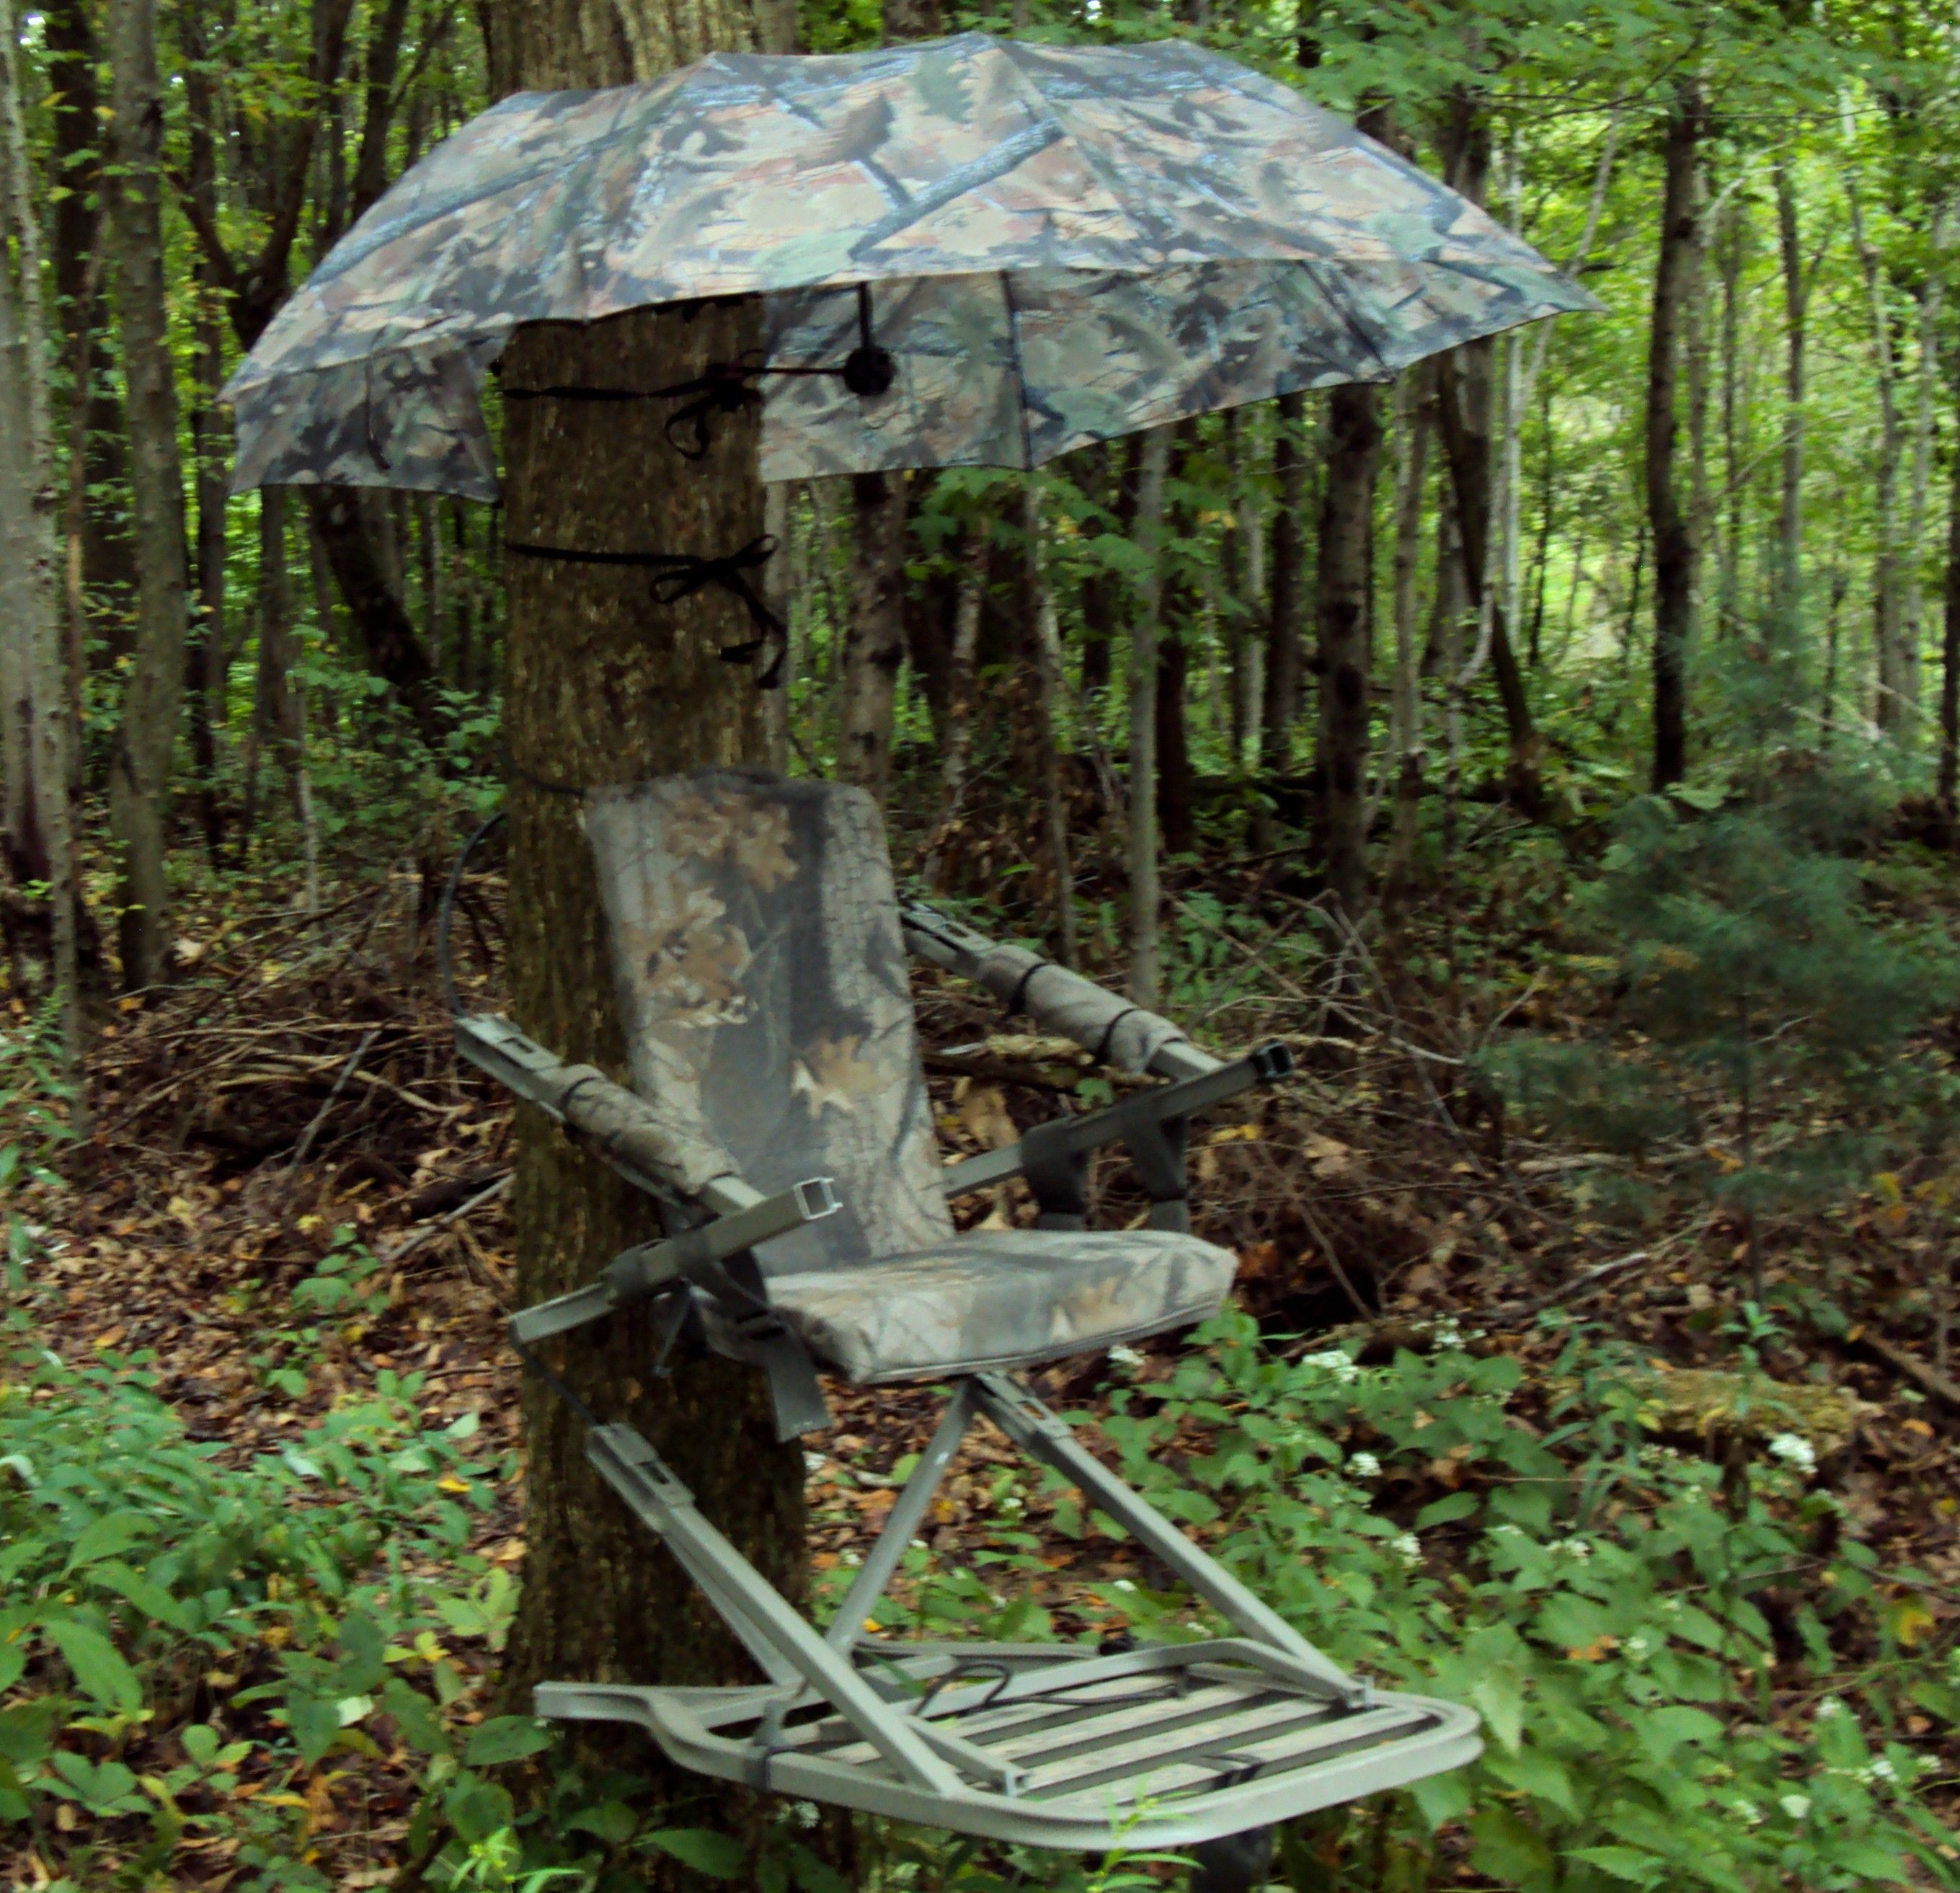 57 Tree Stand Umbrella Hunting Stands Deer Hunting Gear Deer Hunting Gift